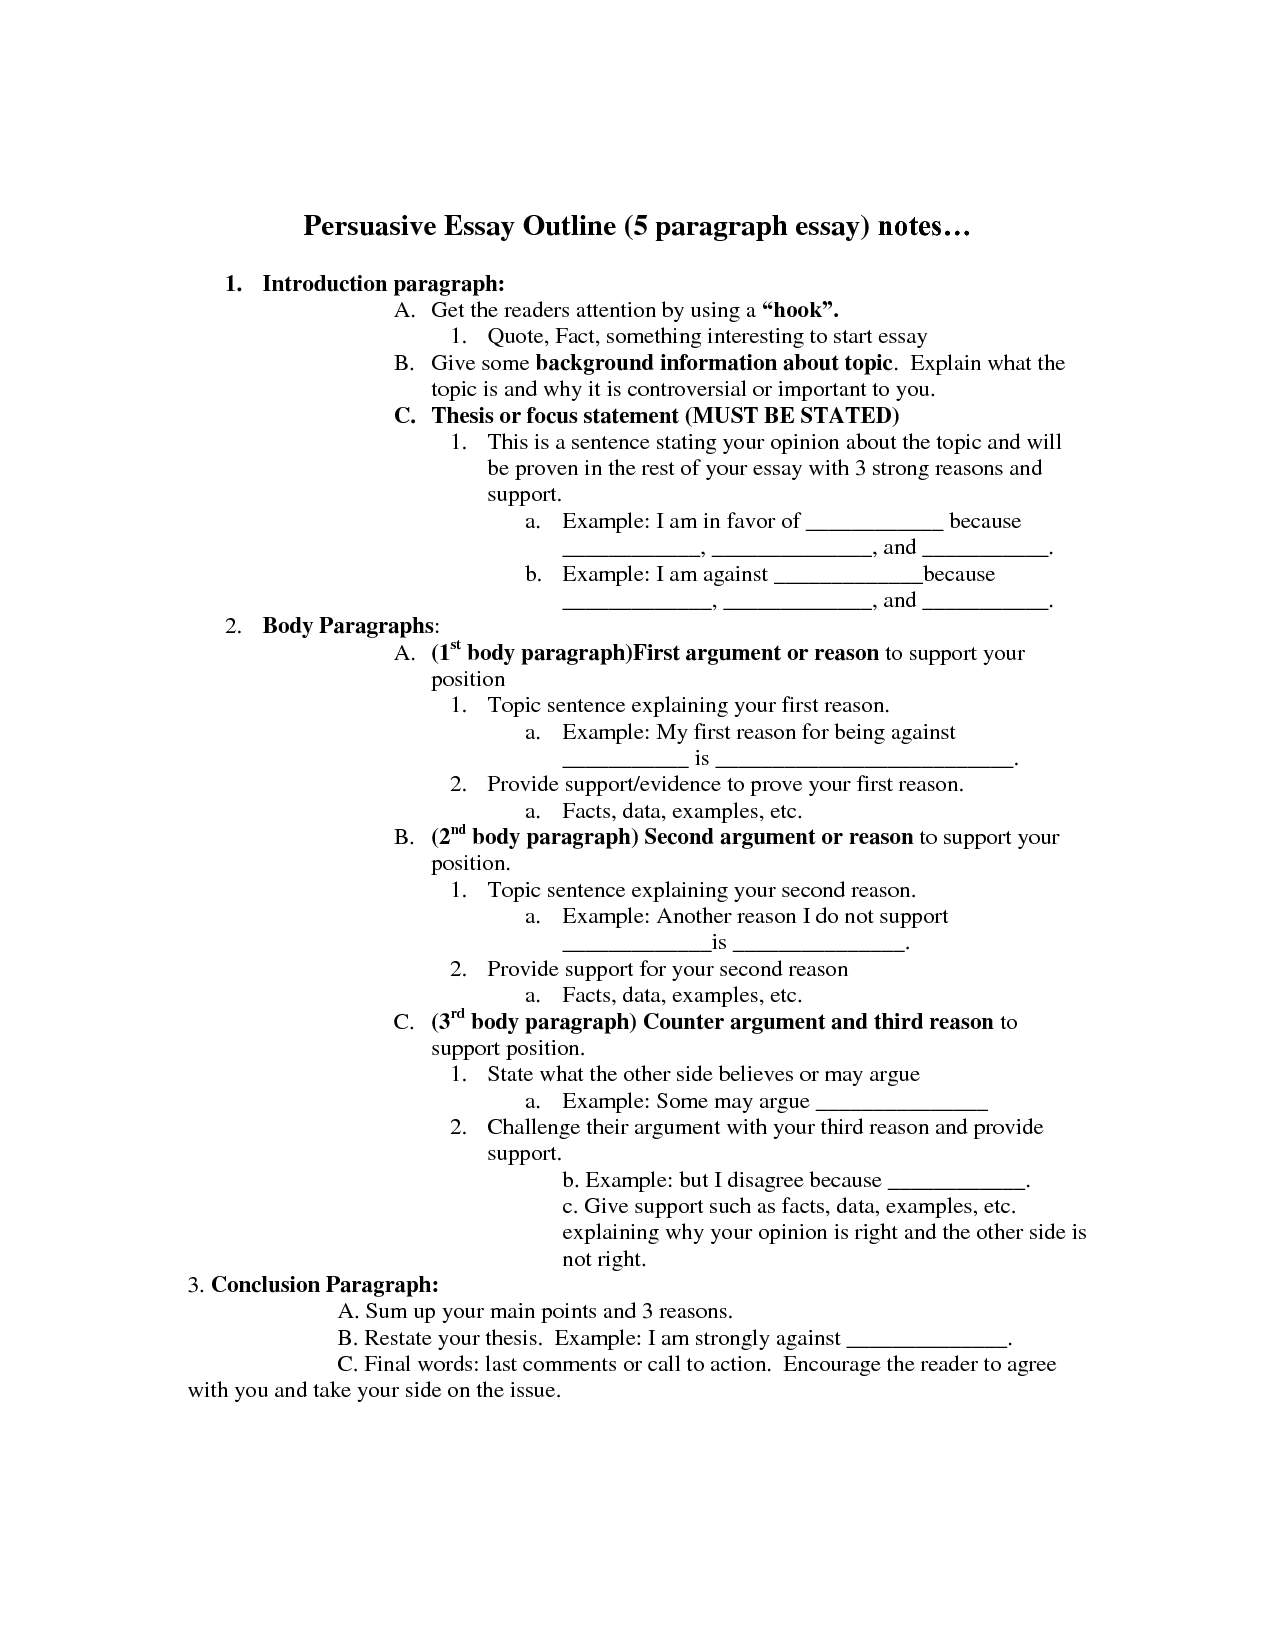 006 Persuasive Essay Outline Unbelievable Template Worksheet Pdf High School Full